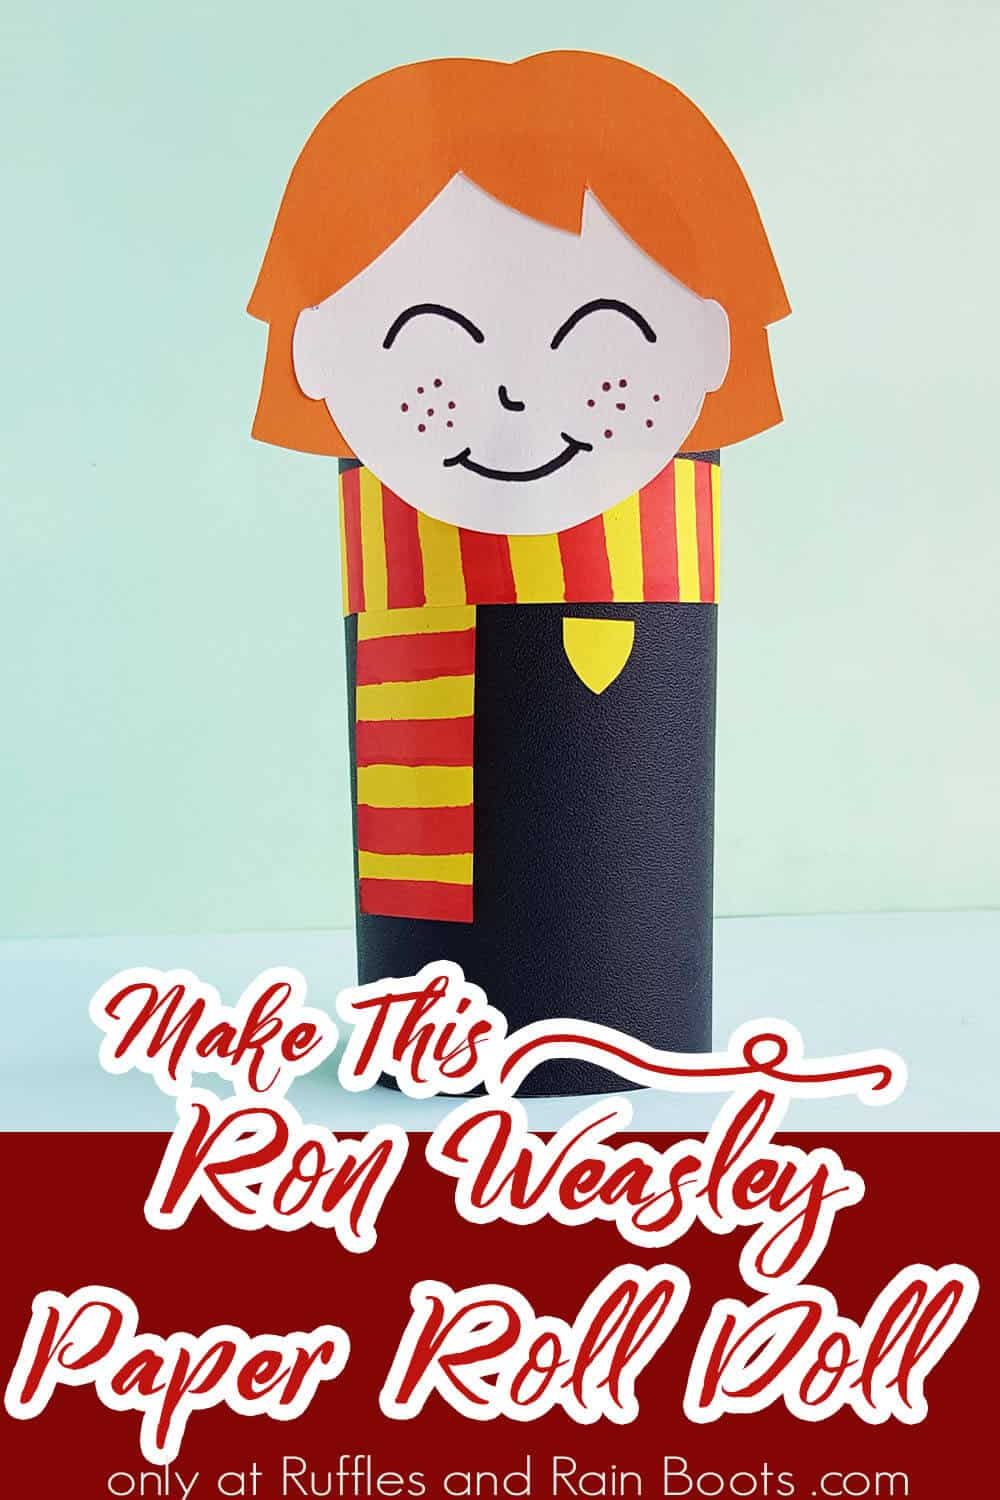 ron harry potter paper craft with text which reads make this ron weasley paper roll doll